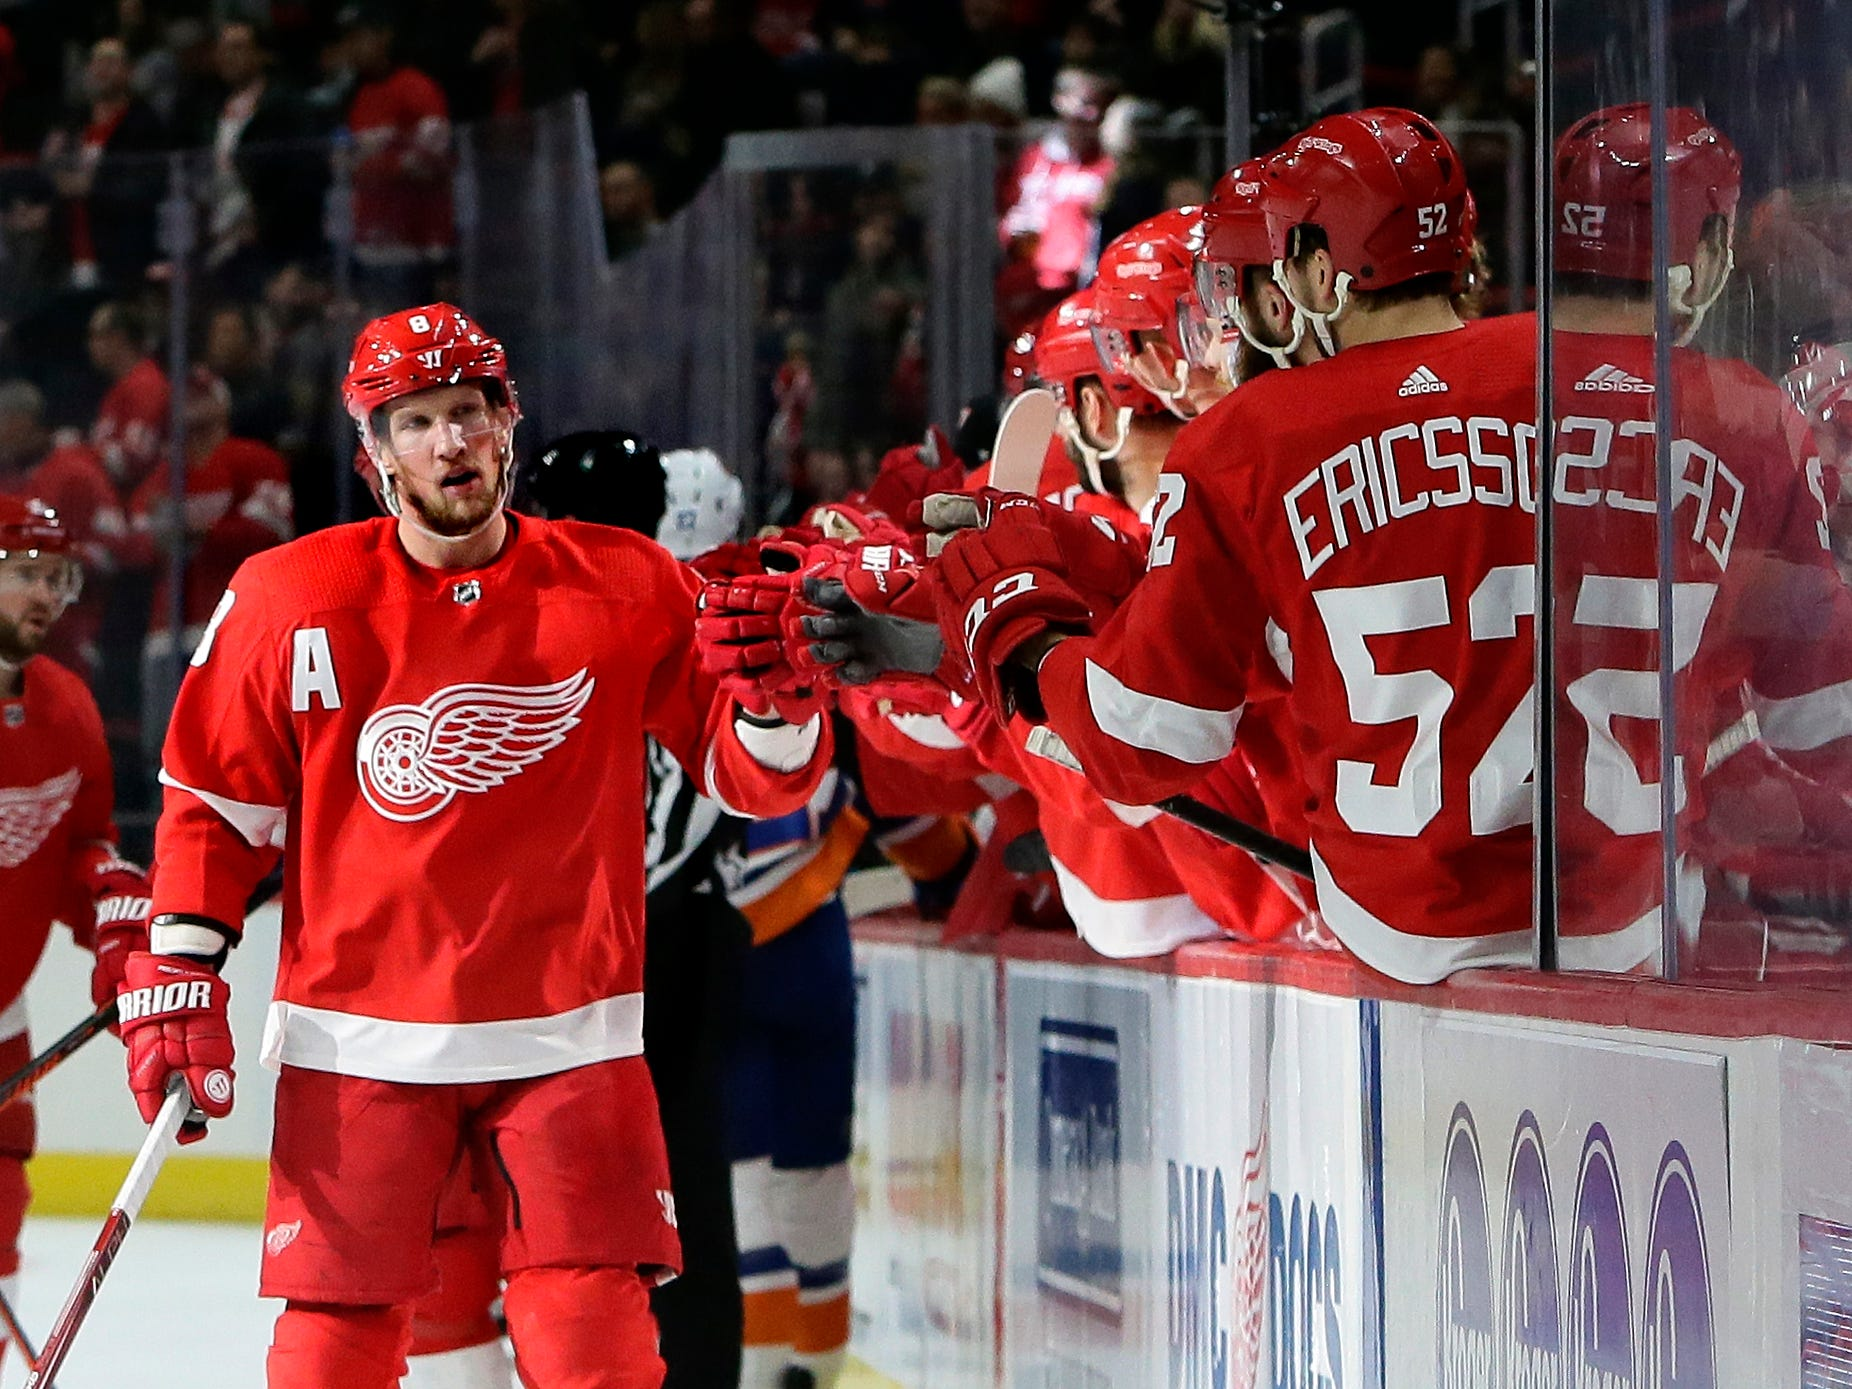 Detroit Red Wings left wing Justin Abdelkader celebrates his first period goal.